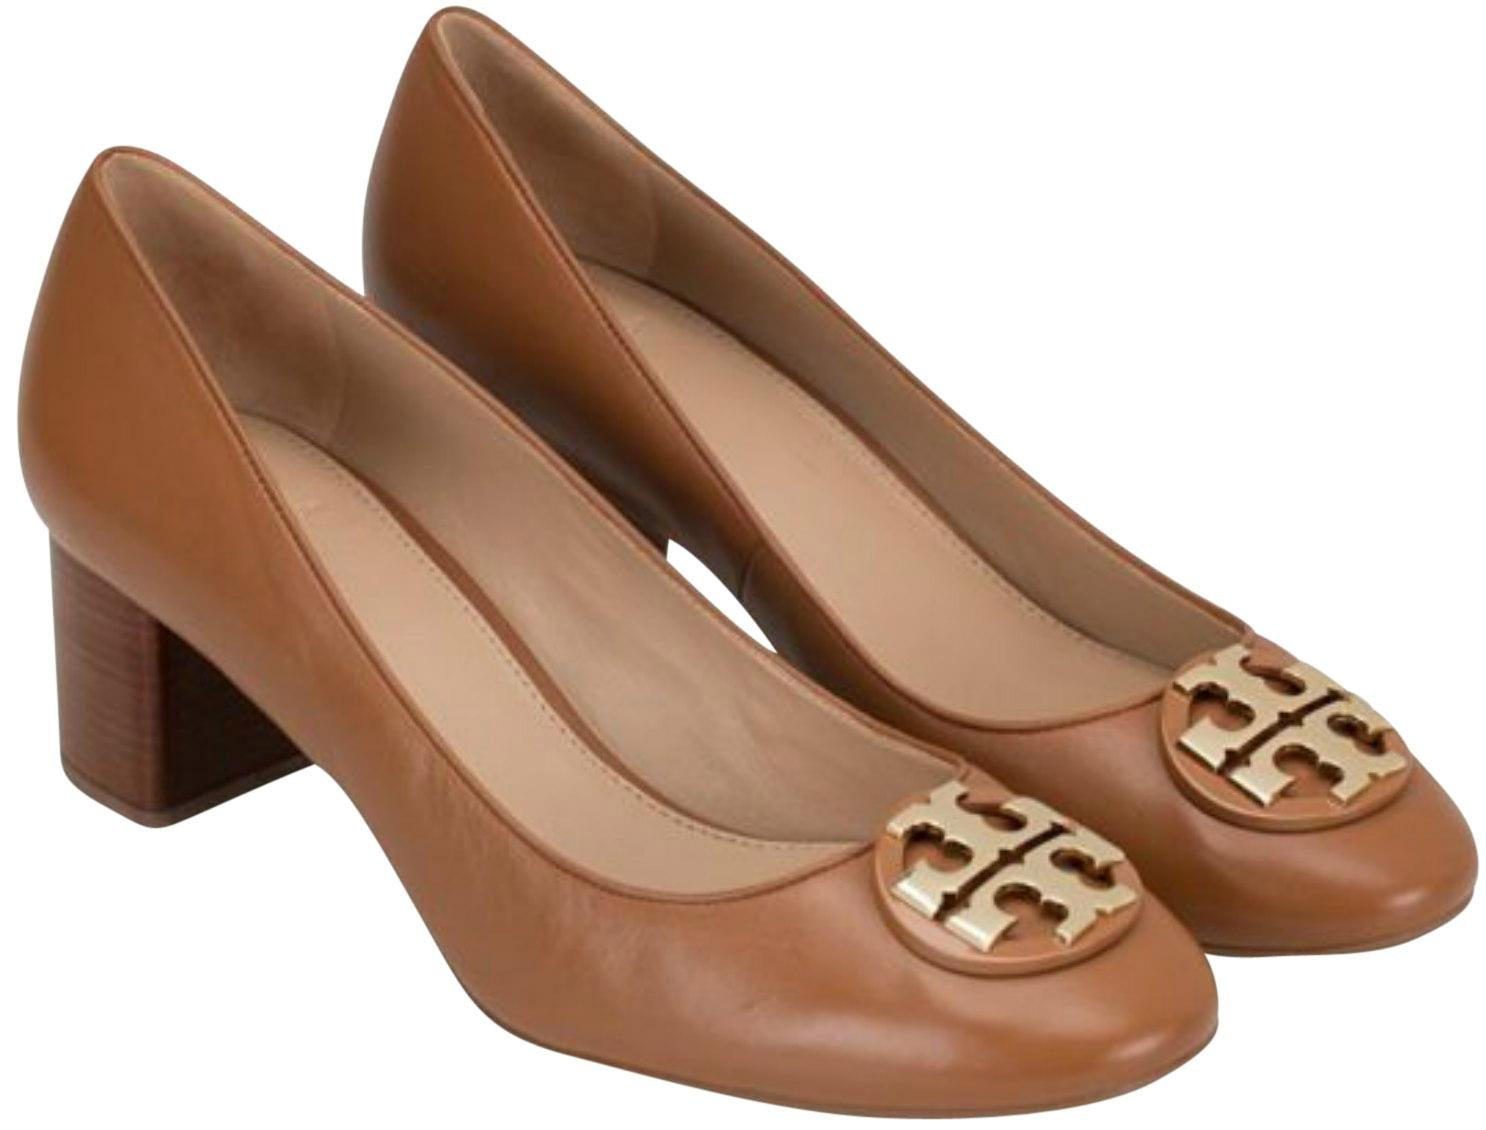 Tory Burch Royal Tan Gold Janey 50mm Calf Leather Pumps Size US 7 Regular (M, B)